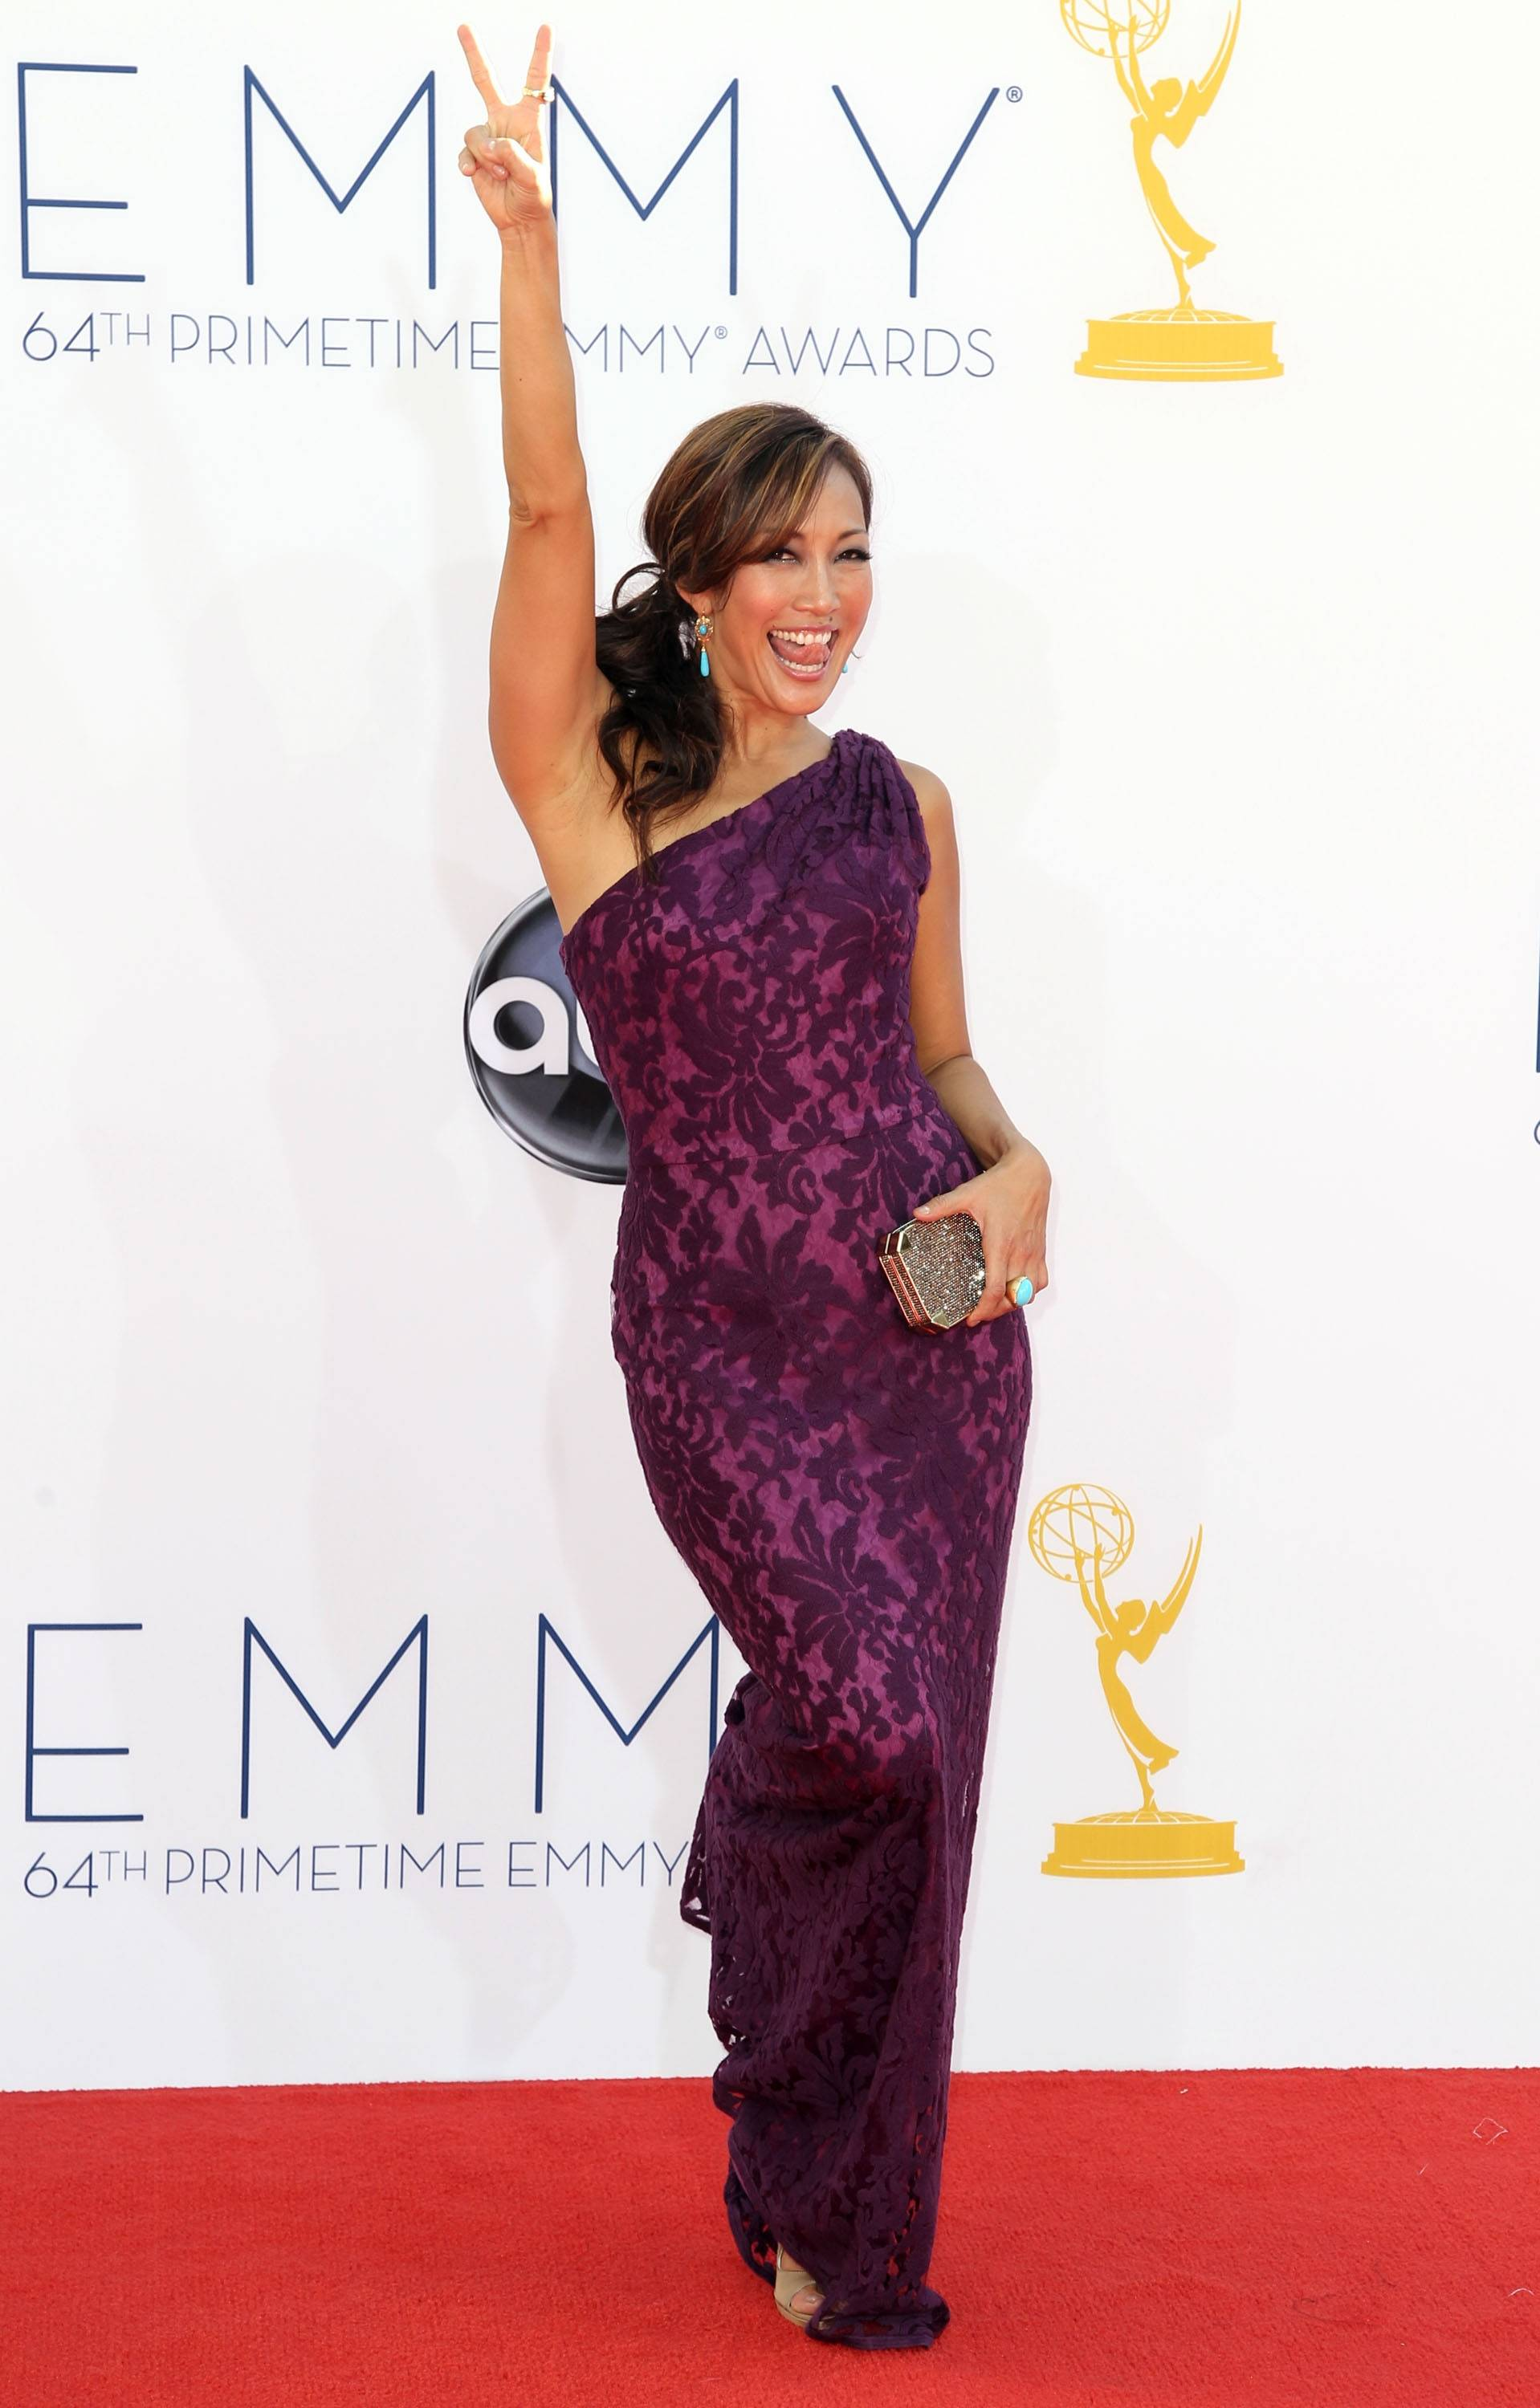 """Dancing with the Stars"" judge Carrie Ann Inaba brings her bigger than life personality to the red carpet."